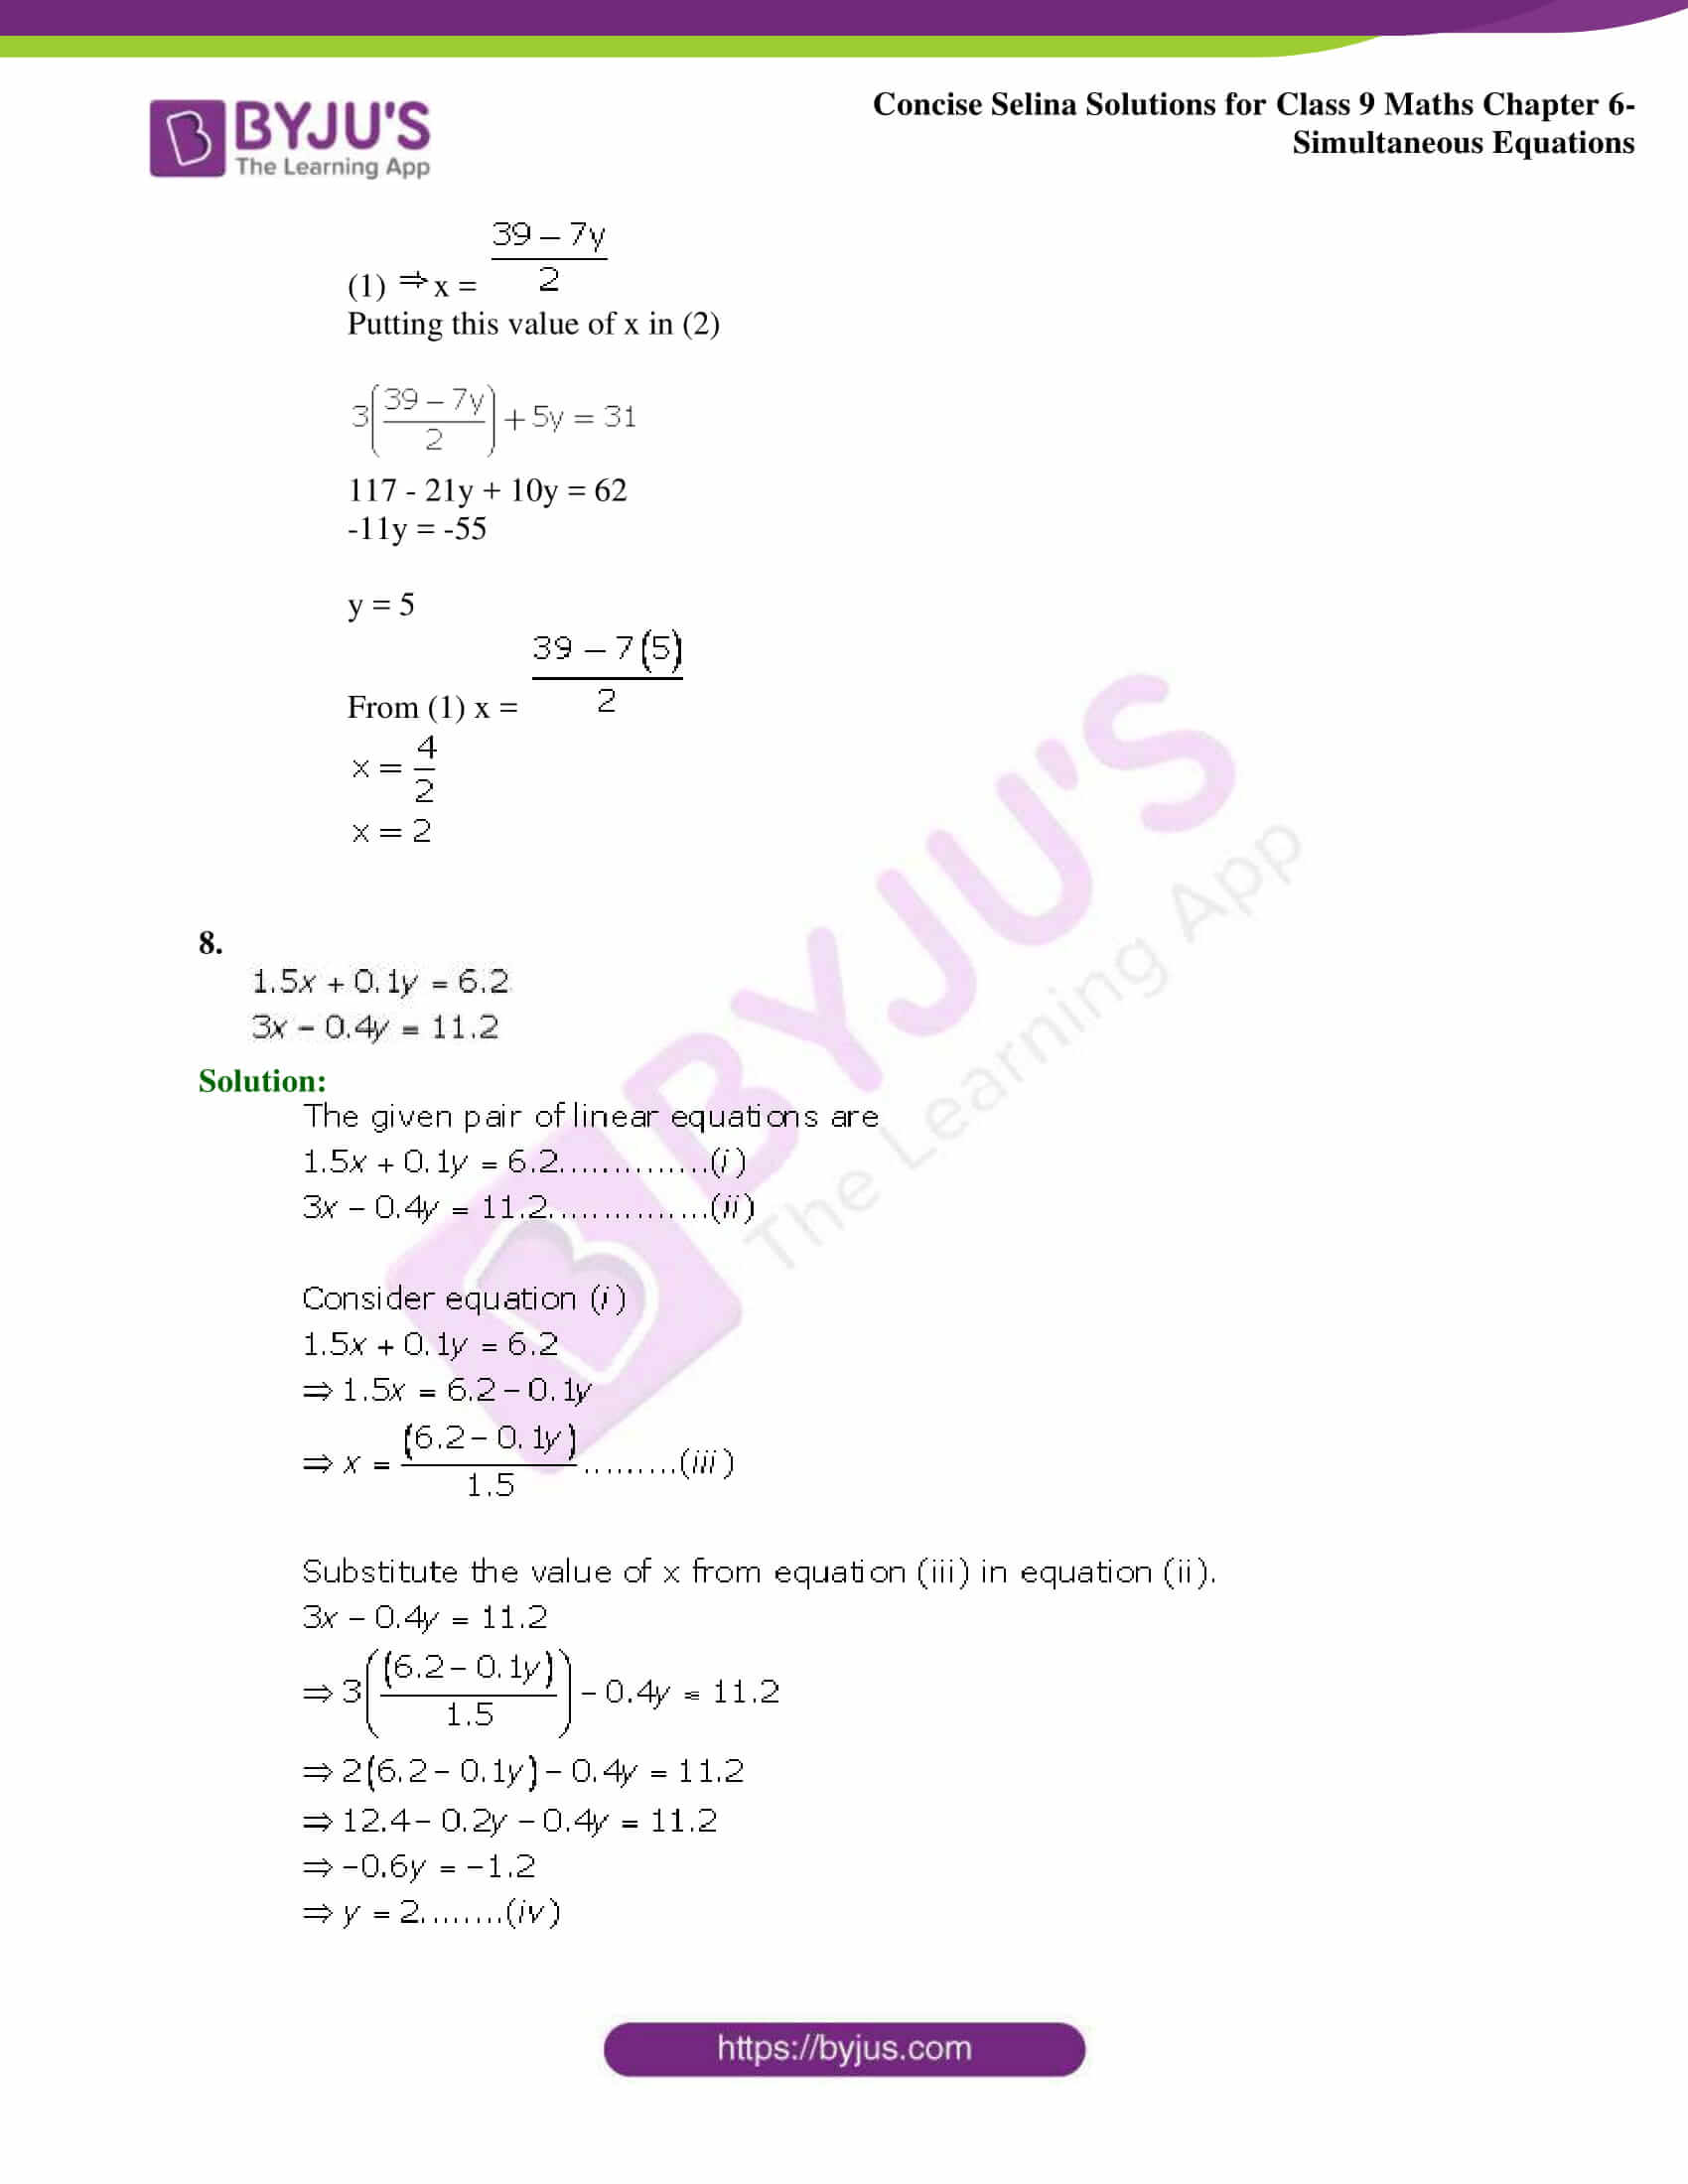 Selina Solutions Class 9 Maths Chapter 6 Simultaneous Equations part 04